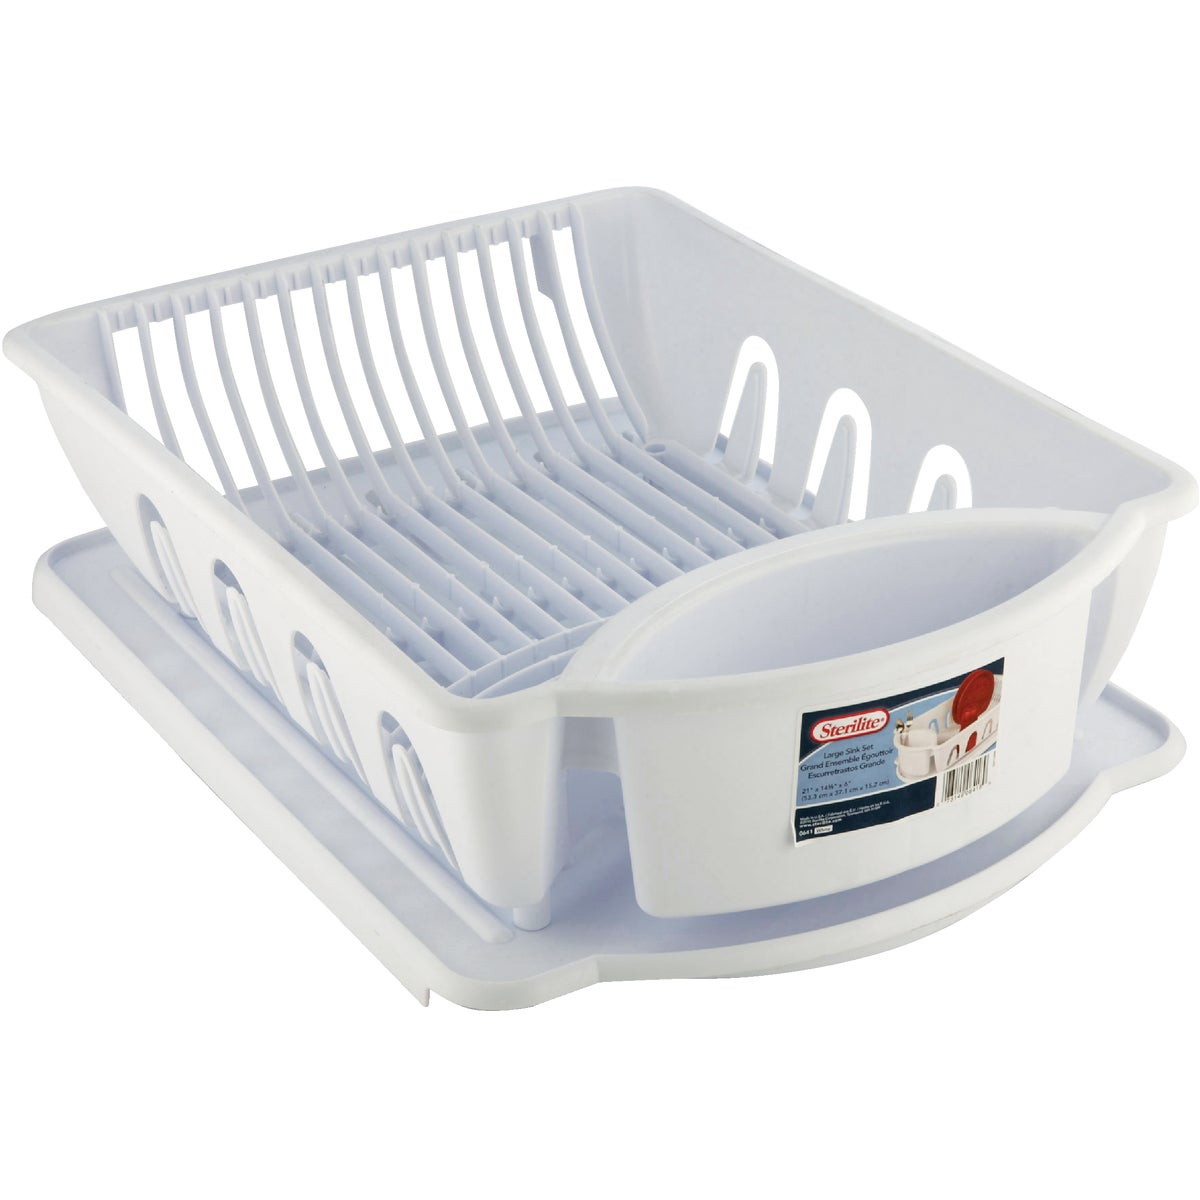 2PC WHITE DISH DRAINER - 06418006 by Sterilite Corp